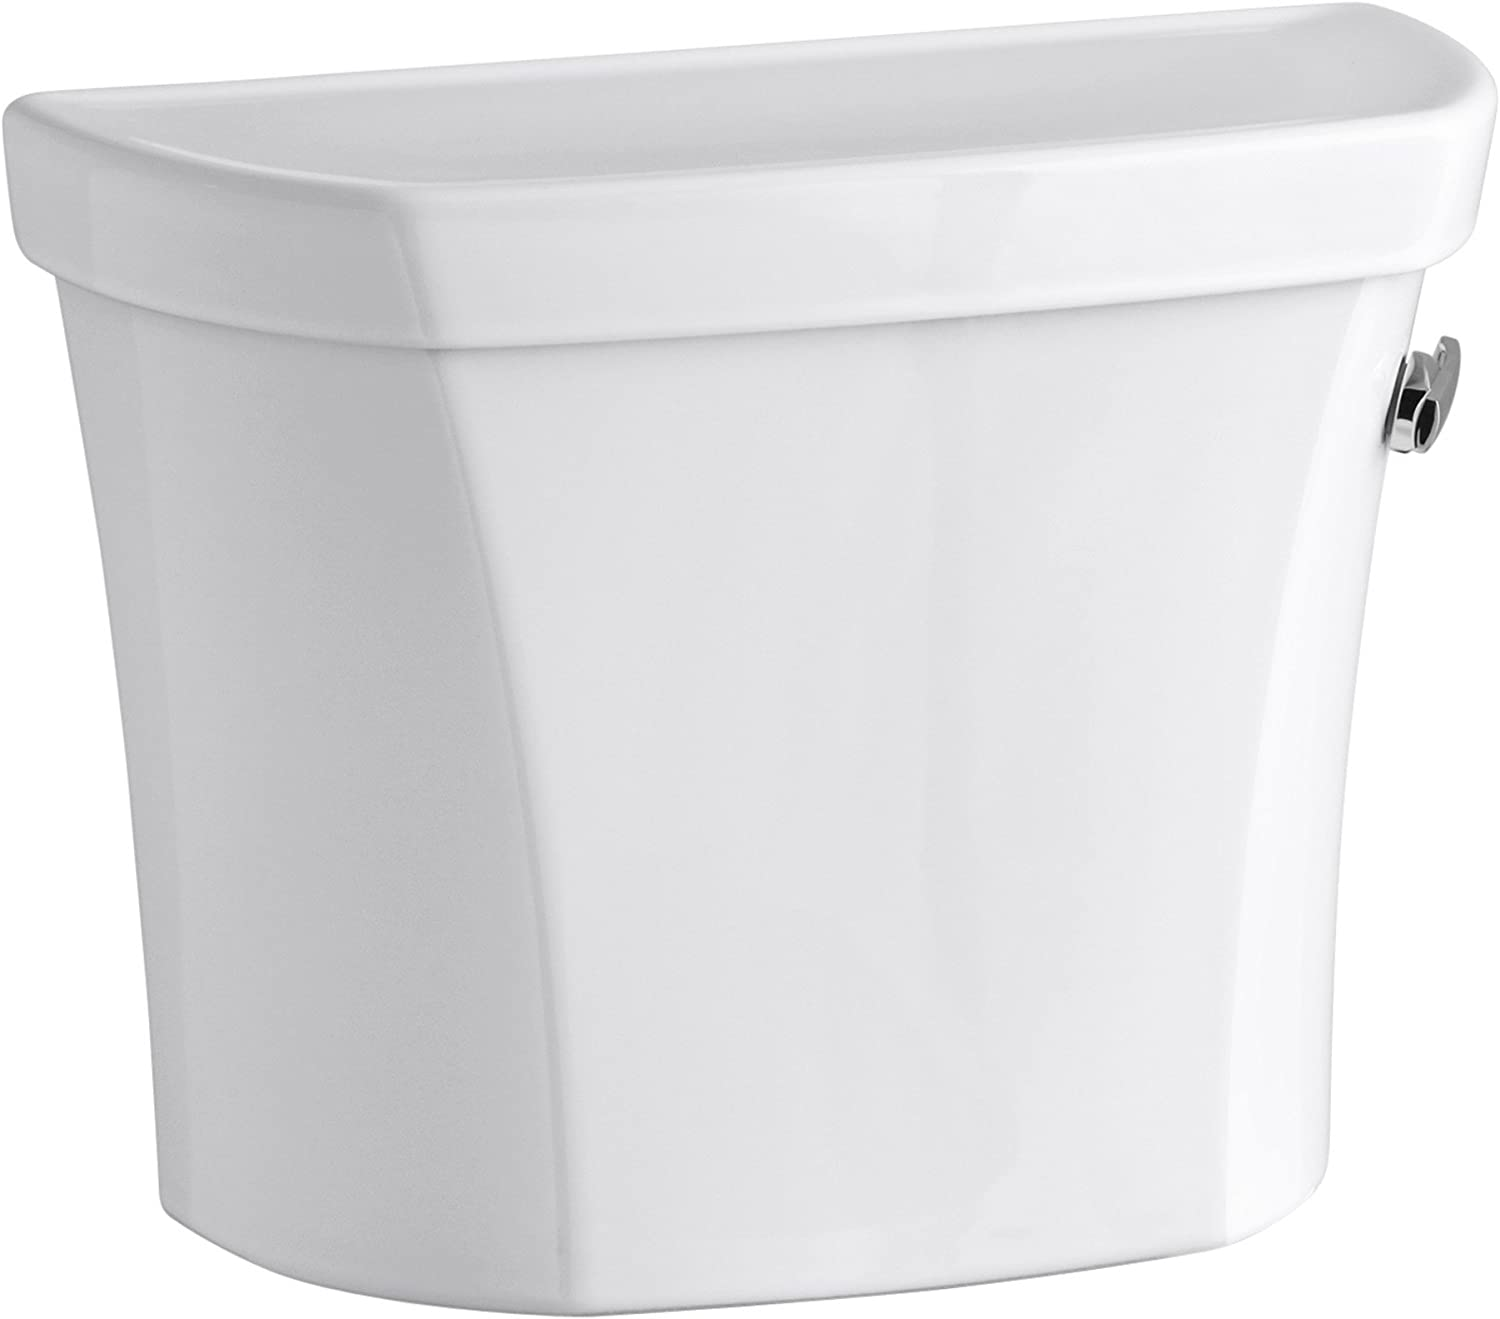 4 years warranty Wellworth 1.0 GPF Toilet Las Vegas Mall Tank Trip White Right-Hand Lever with